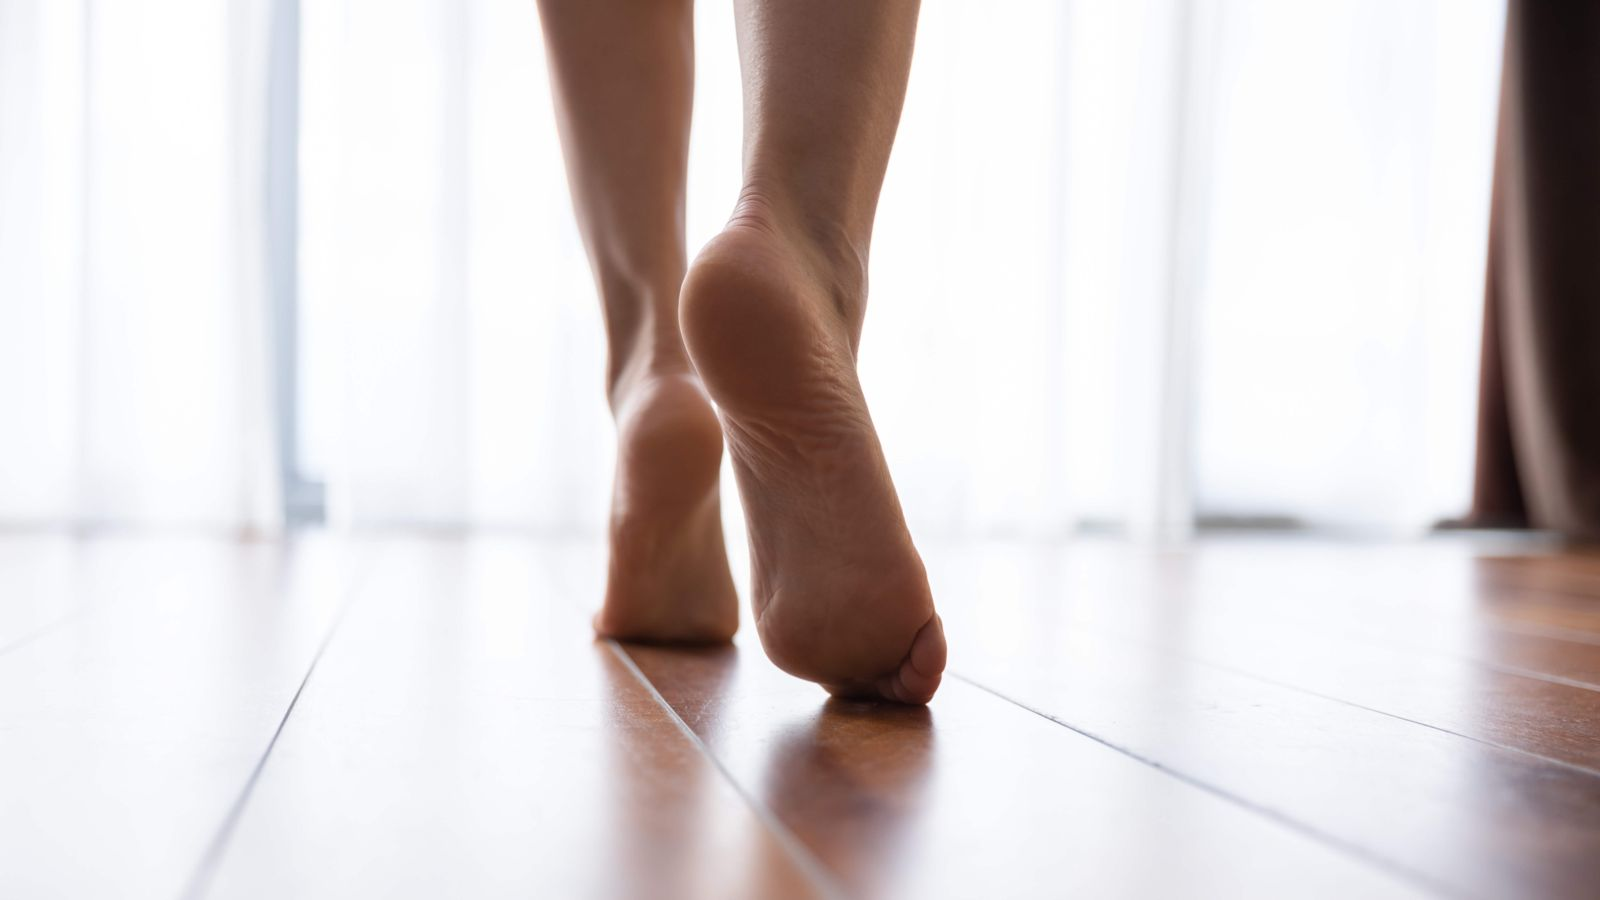 grapevine doctor for Flat Feet in Texas